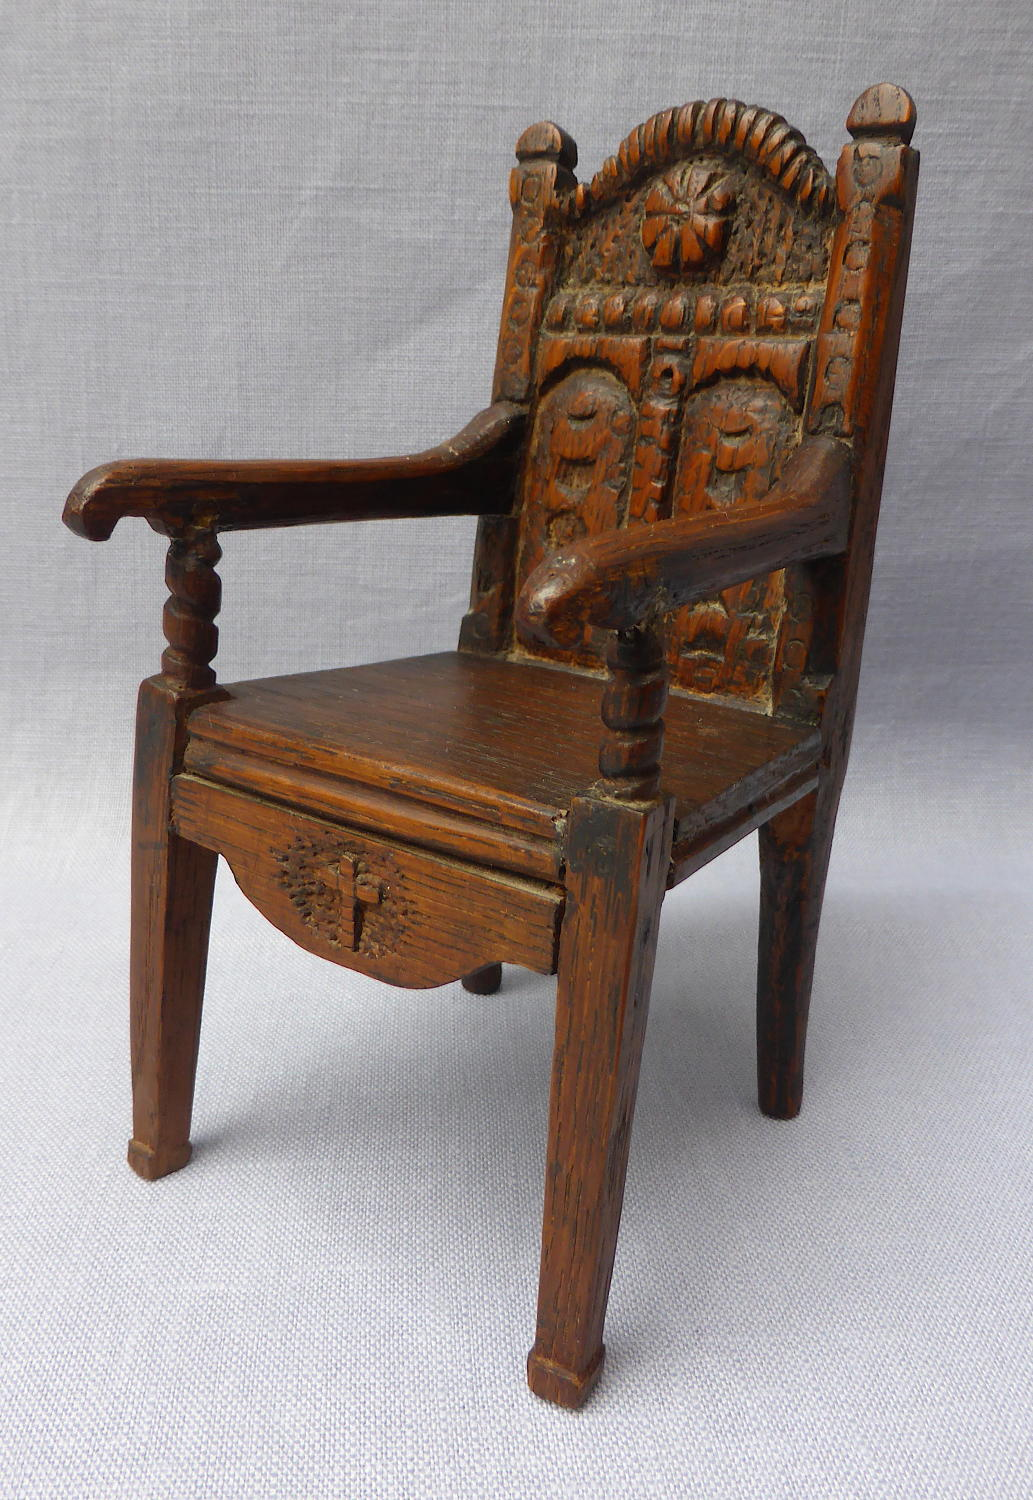 Late 19th century miniature carved wainscot chair